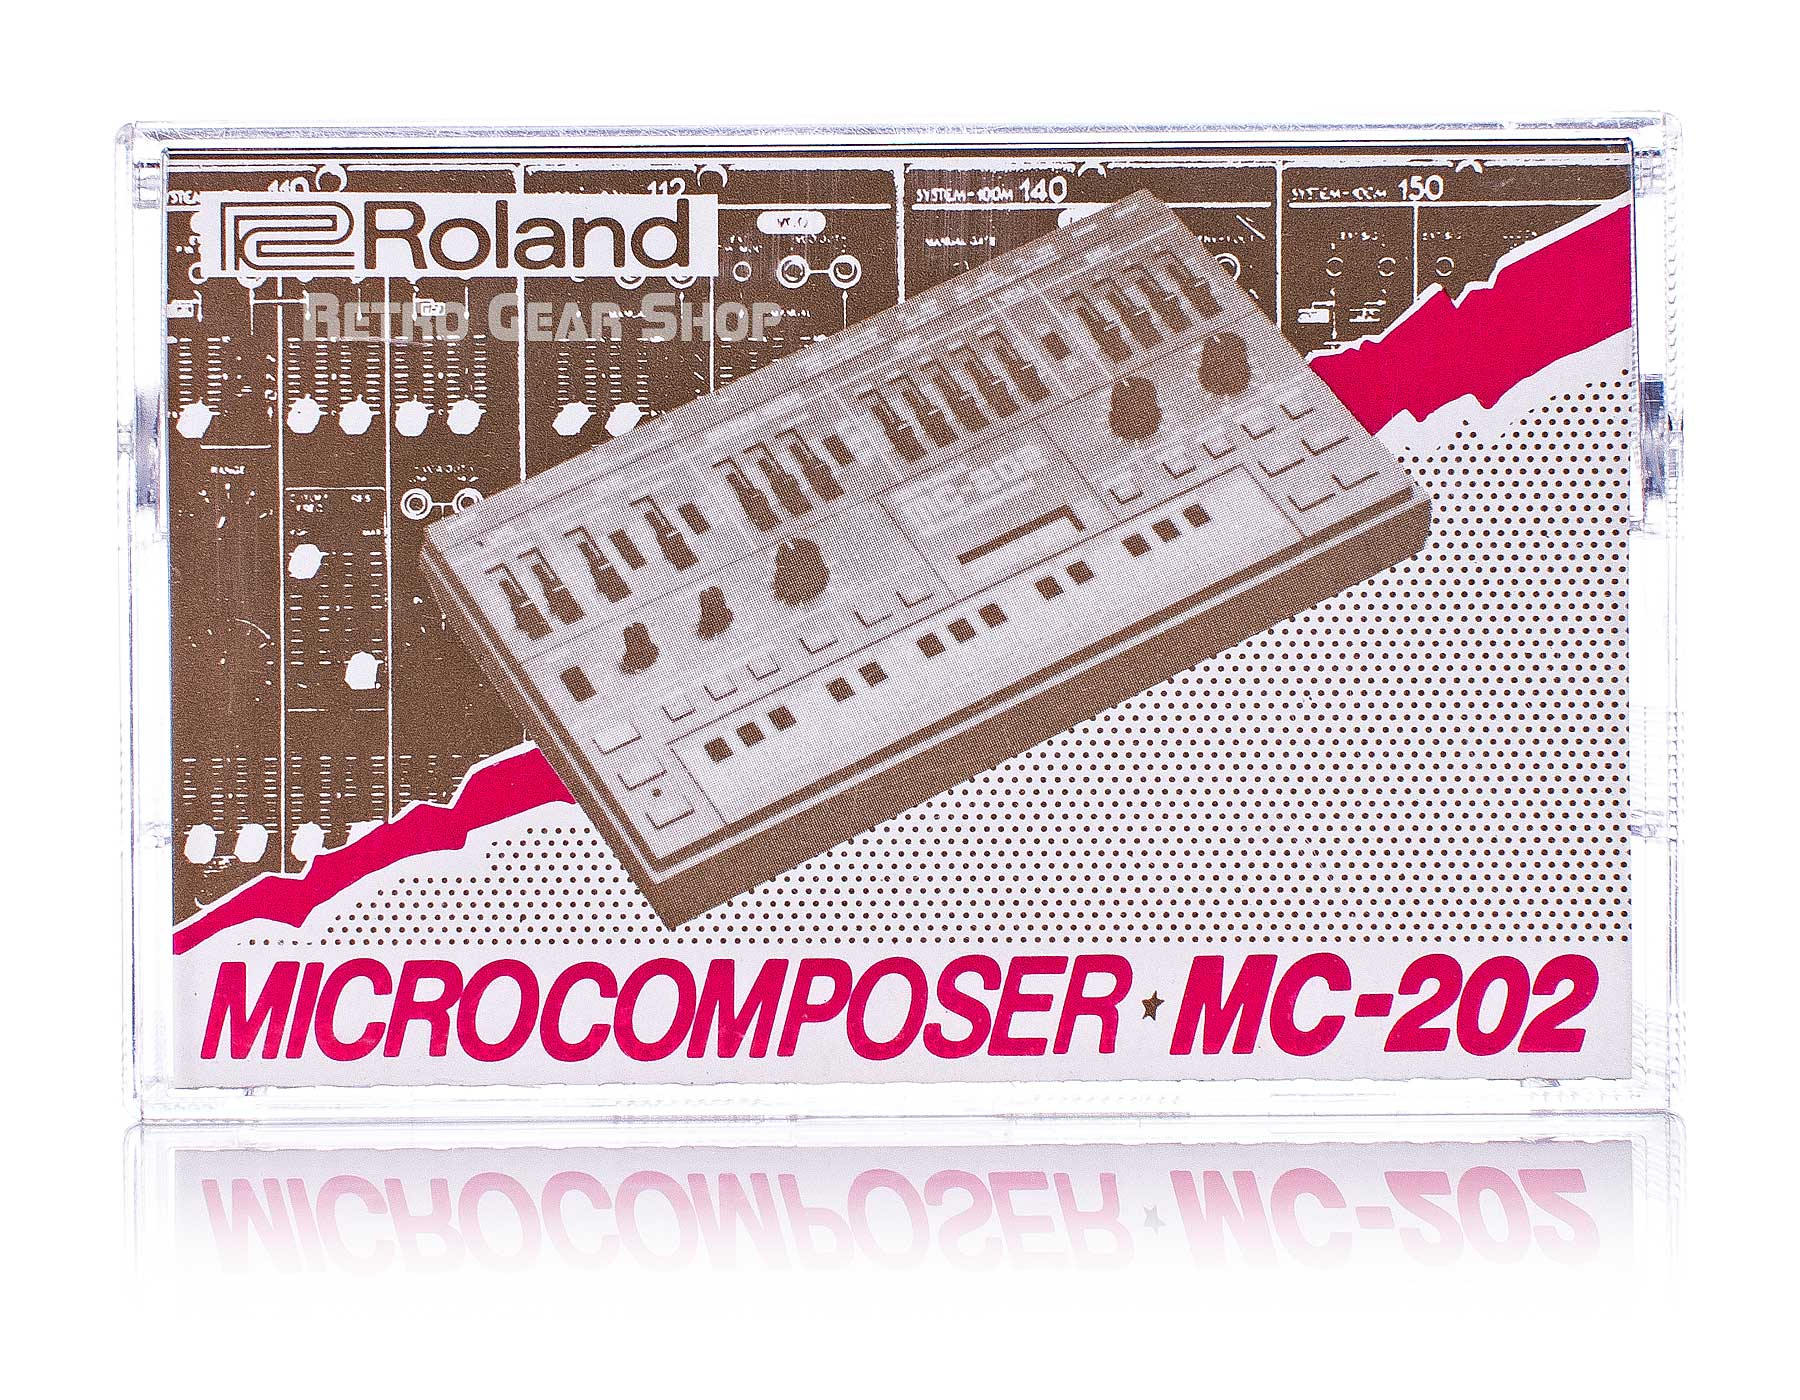 Roland MC-202 MicroComposer Original Cassette Tape Front